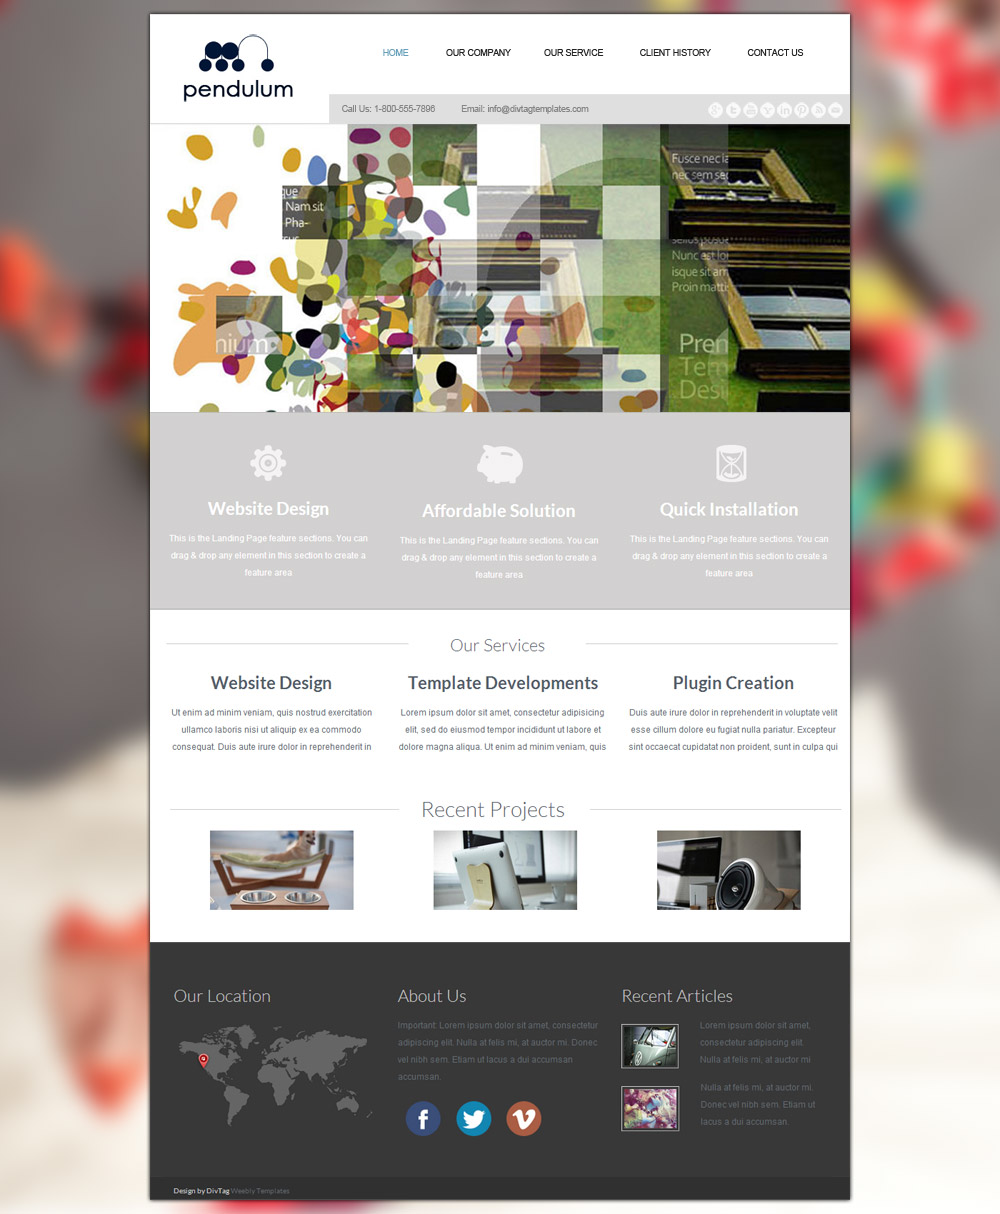 Weebly Templates & Weebly Themes - Pendulum